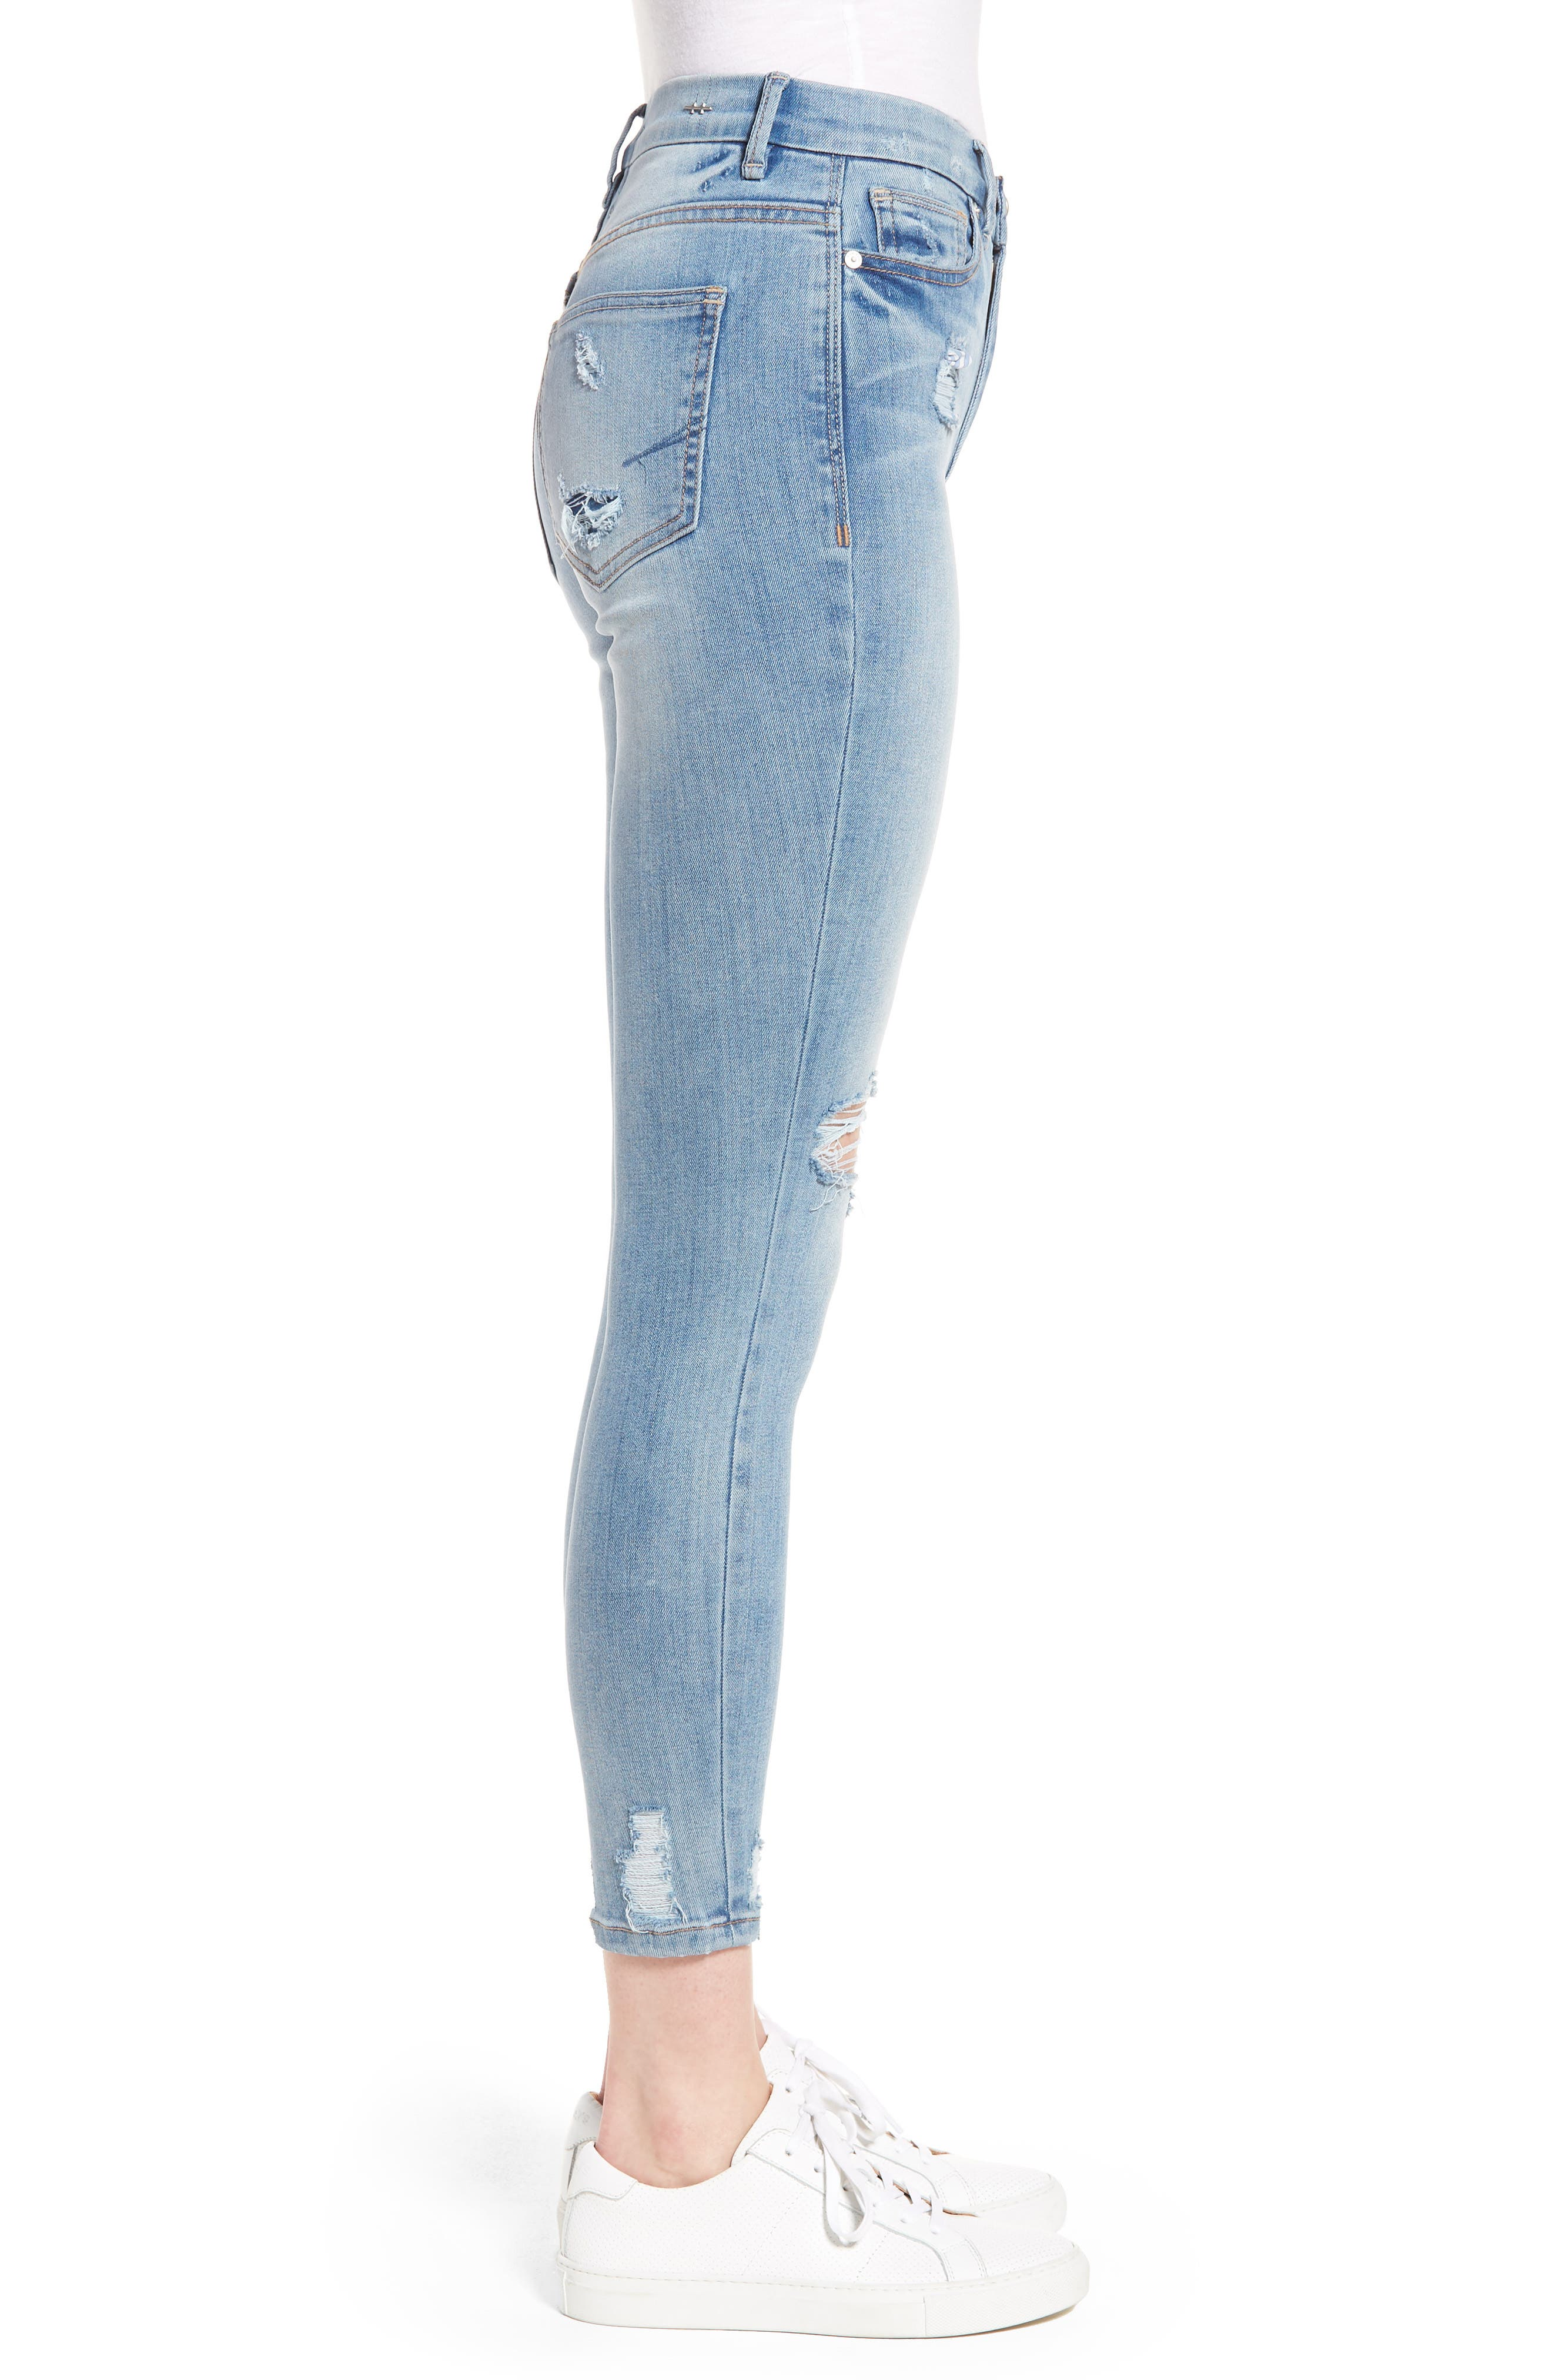 Cressa High Rise Ankle Skinny Jeans,                             Alternate thumbnail 3, color,                             Varnish